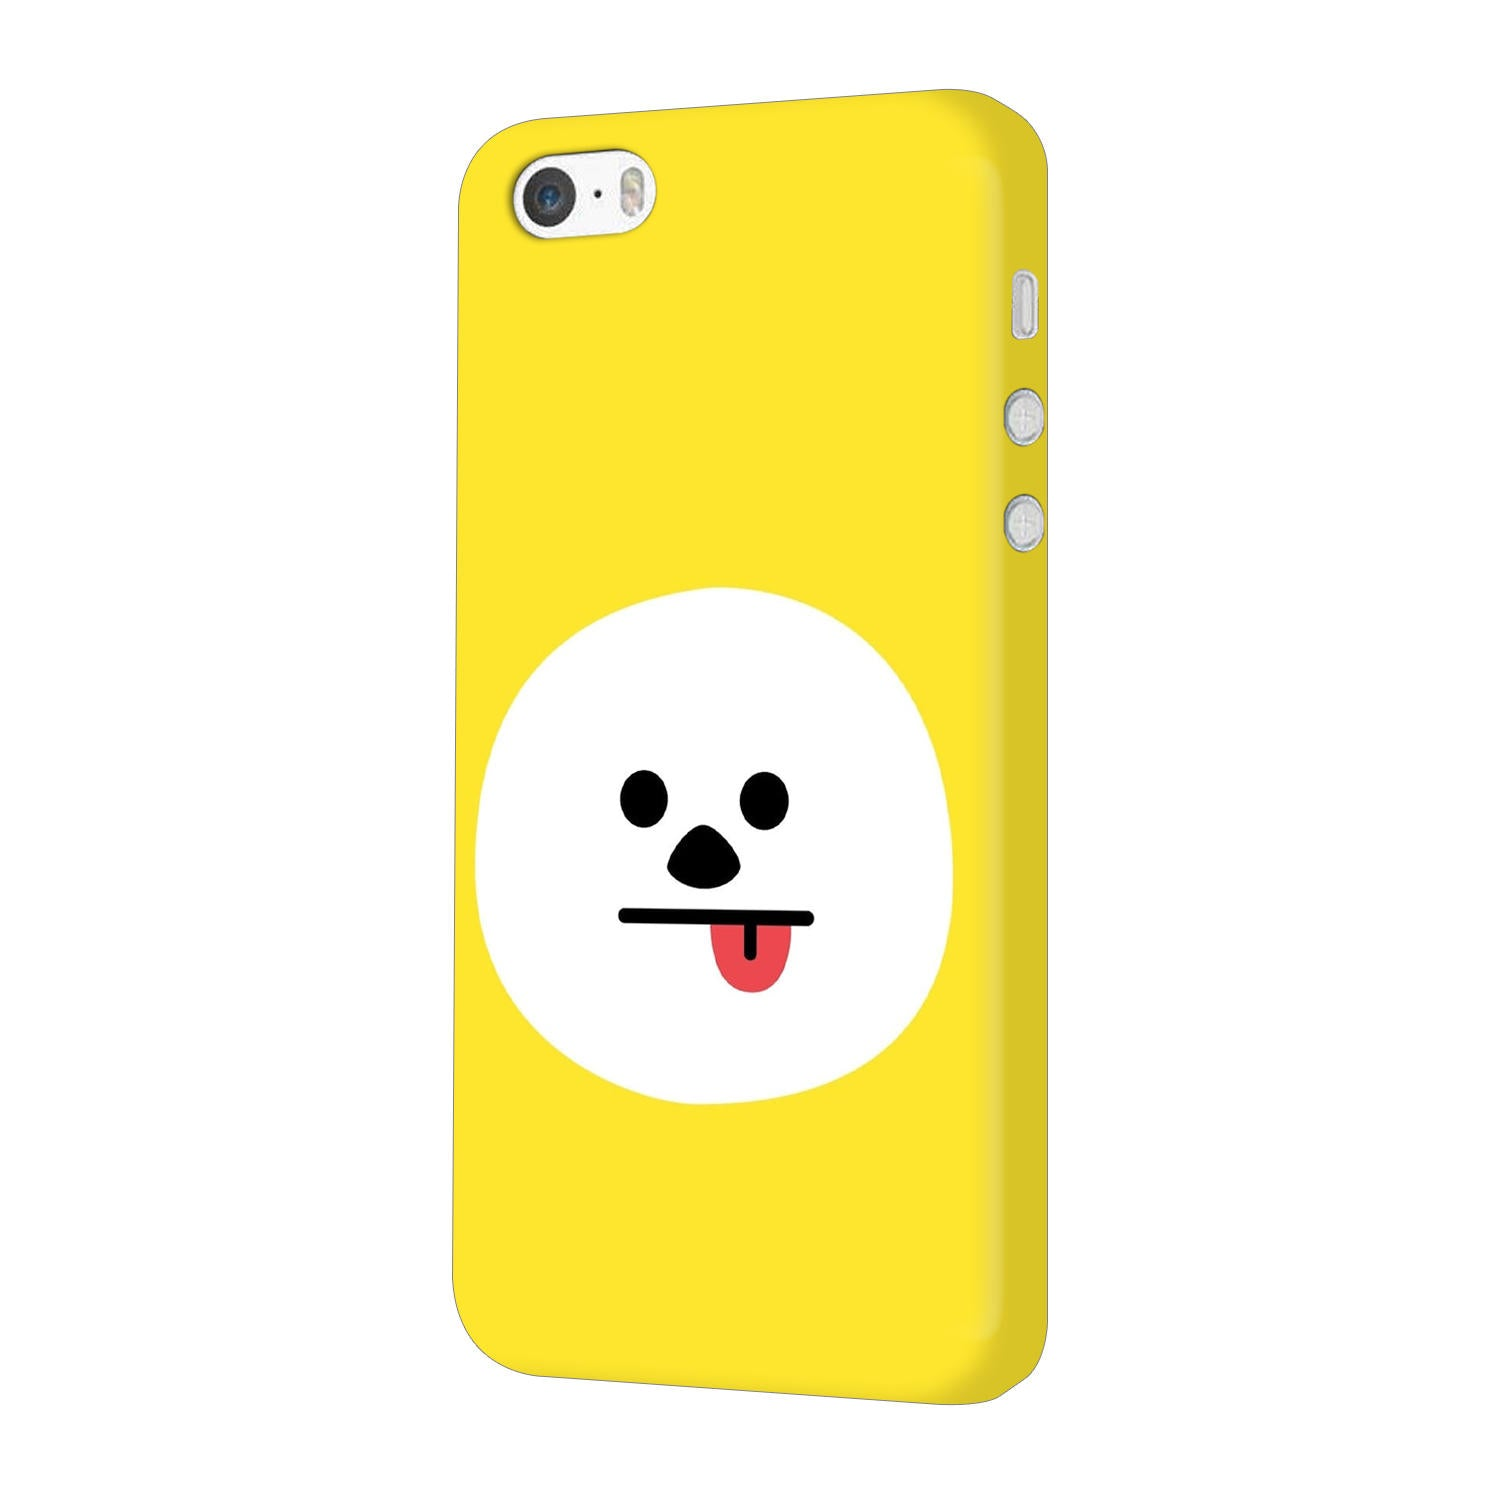 Tongue Out Smile Funny Face iPhone 5 Mobile Cover Case